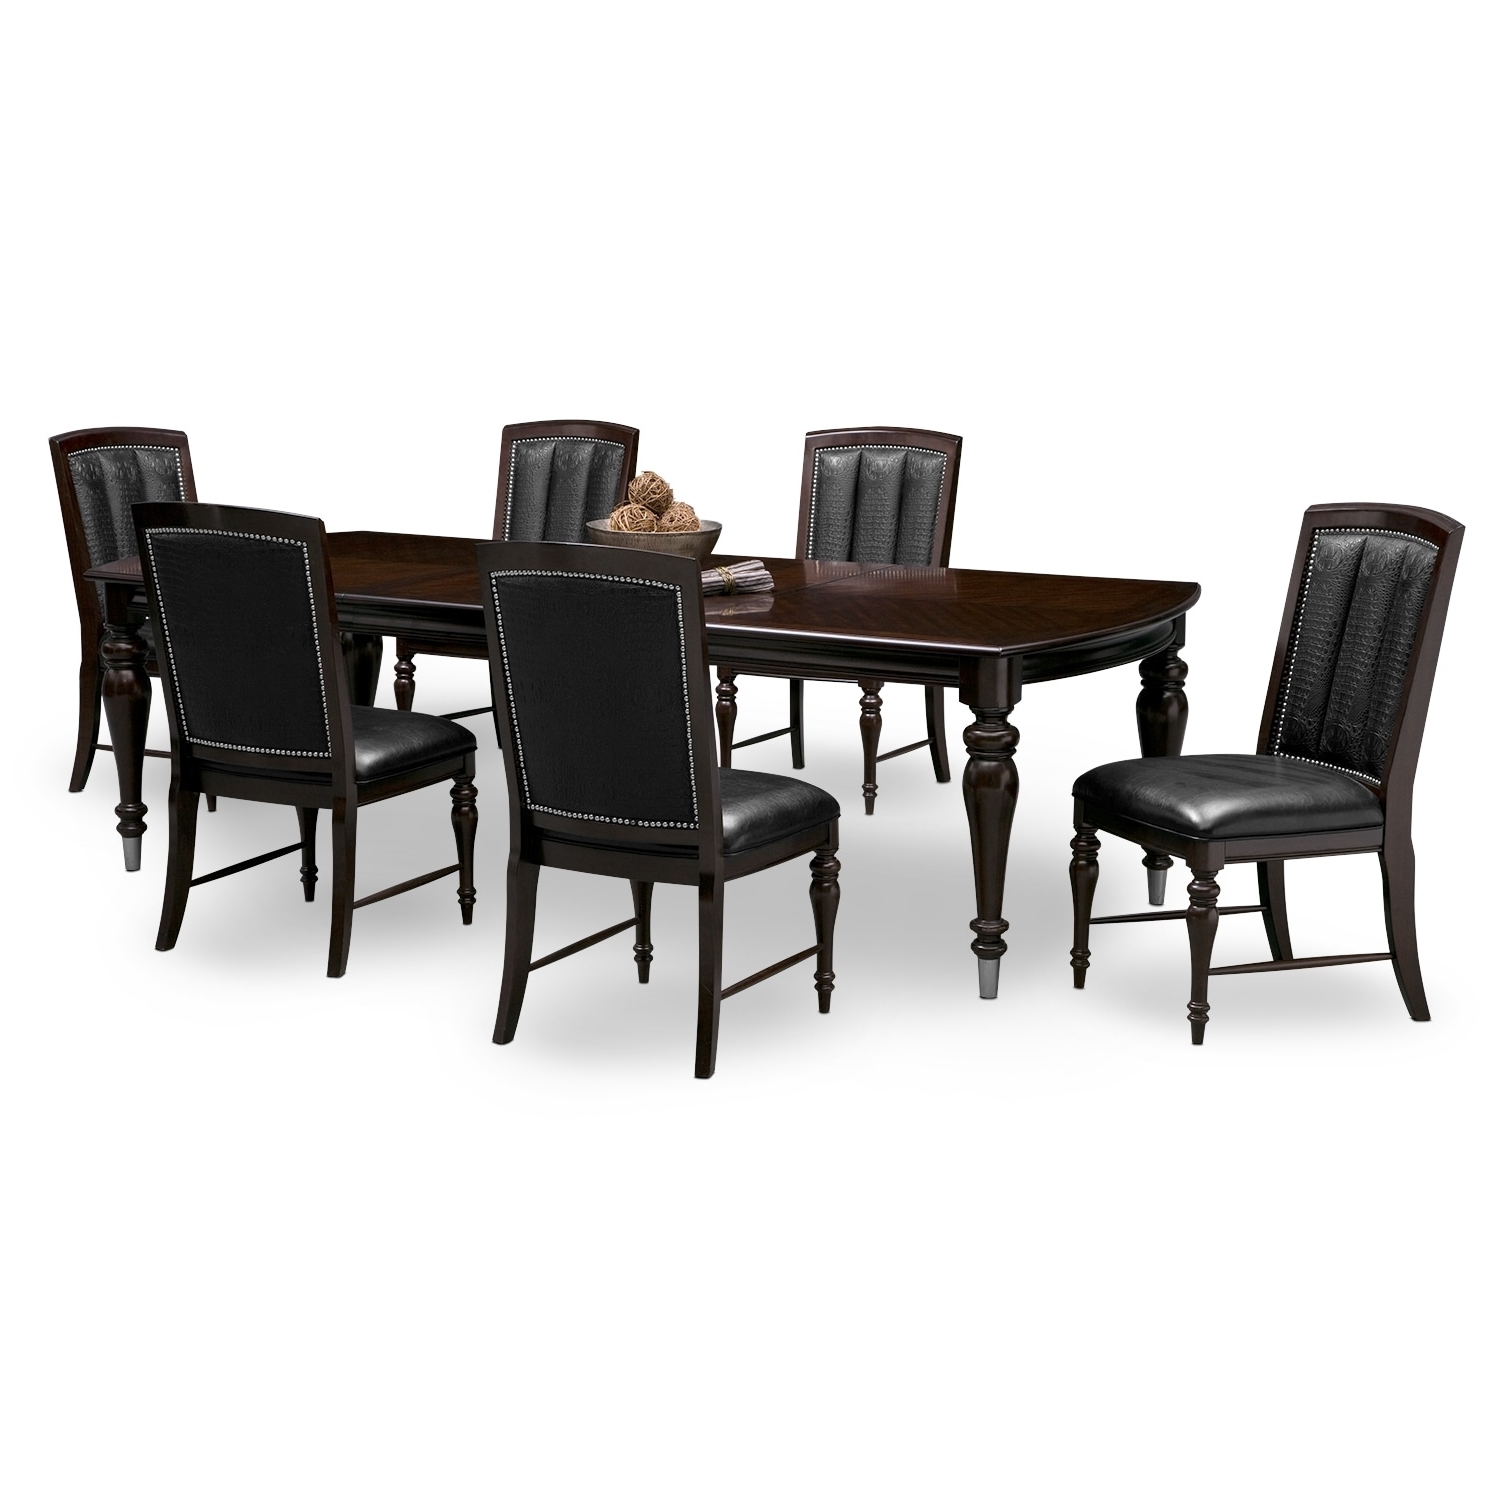 Fashionable Market 6 Piece Dining Sets With Host And Side Chairs Throughout Dining Room Furniture (View 12 of 25)